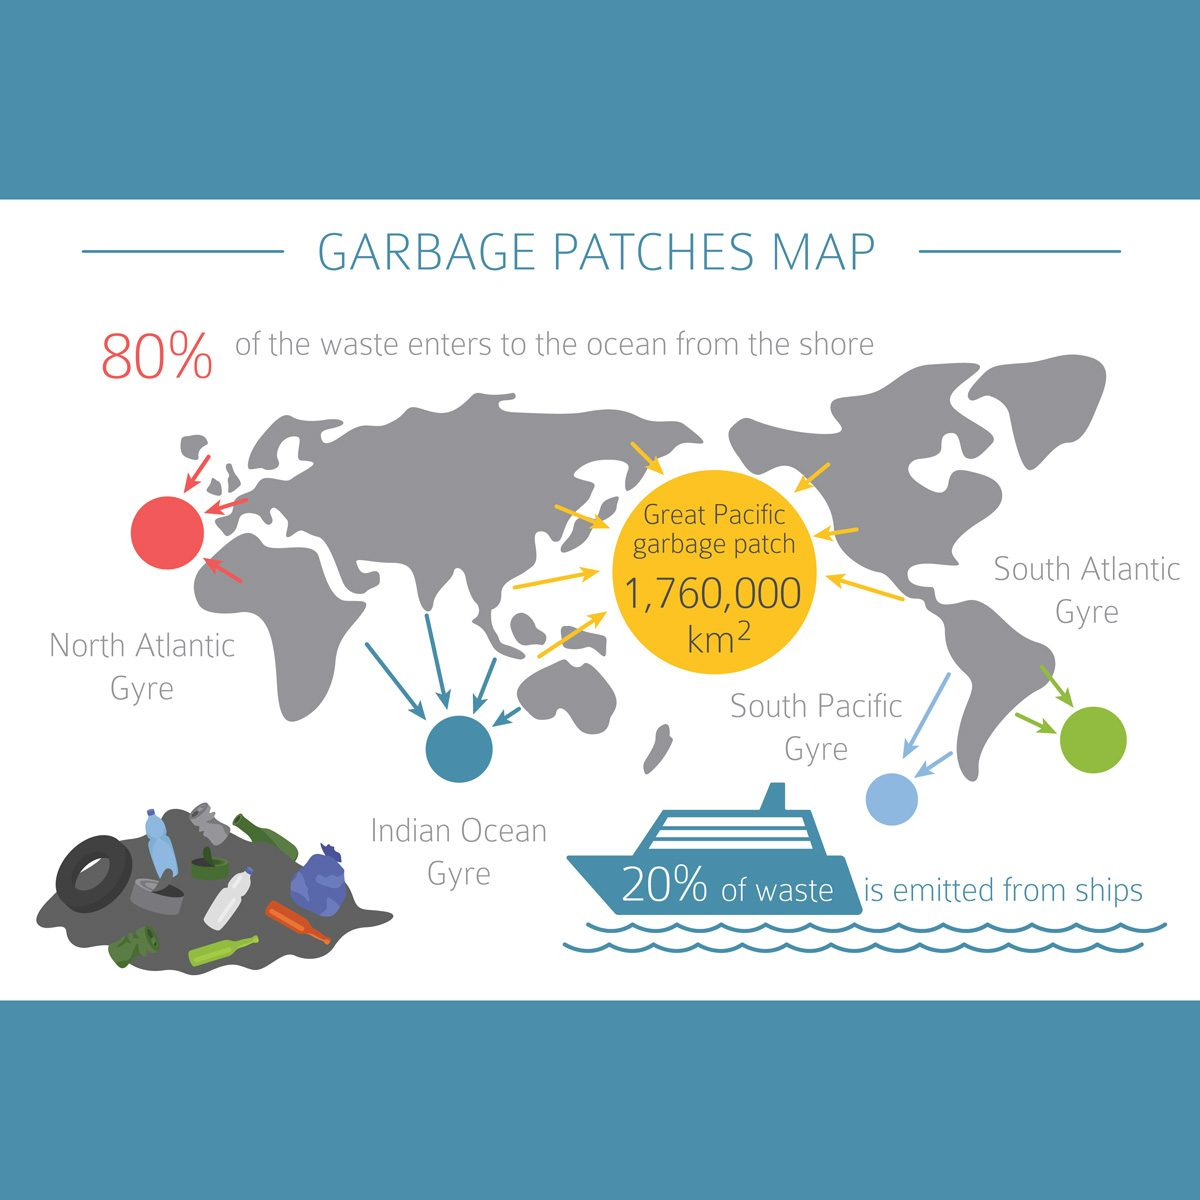 great pacific garbage patch location stats info graphic